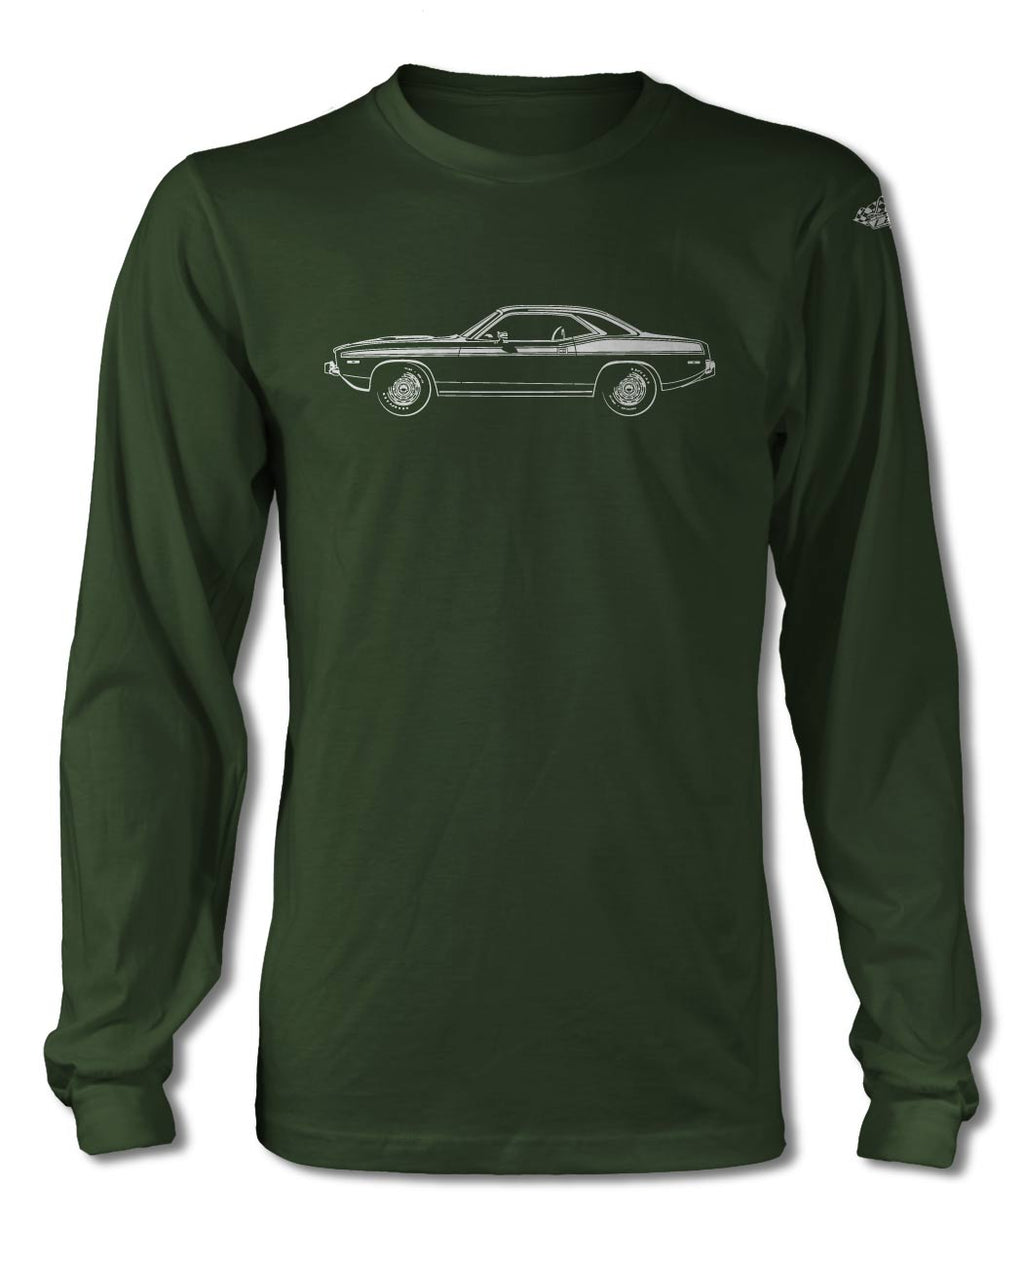 1974 Plymouth Barracuda 'Cuda 340 Coupe T-Shirt - Long Sleeves - Side View